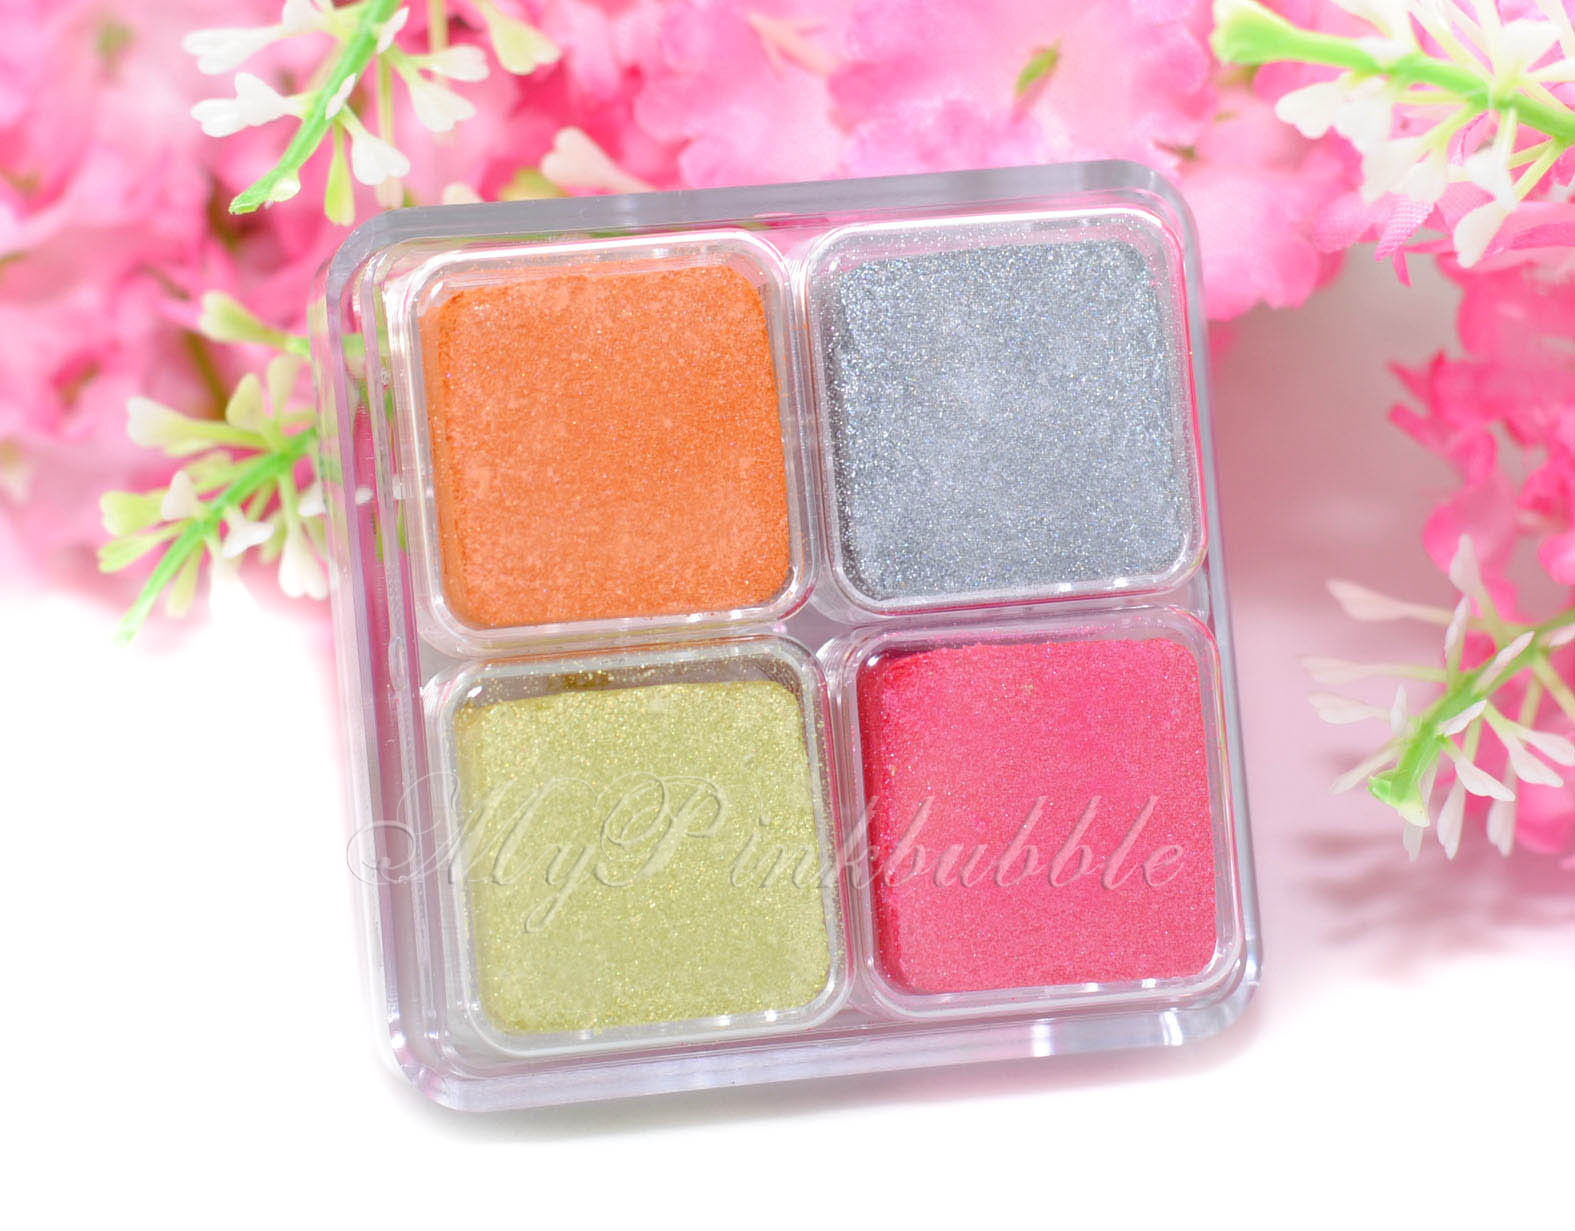 Body shop paleta shimmer cubes pink poppy